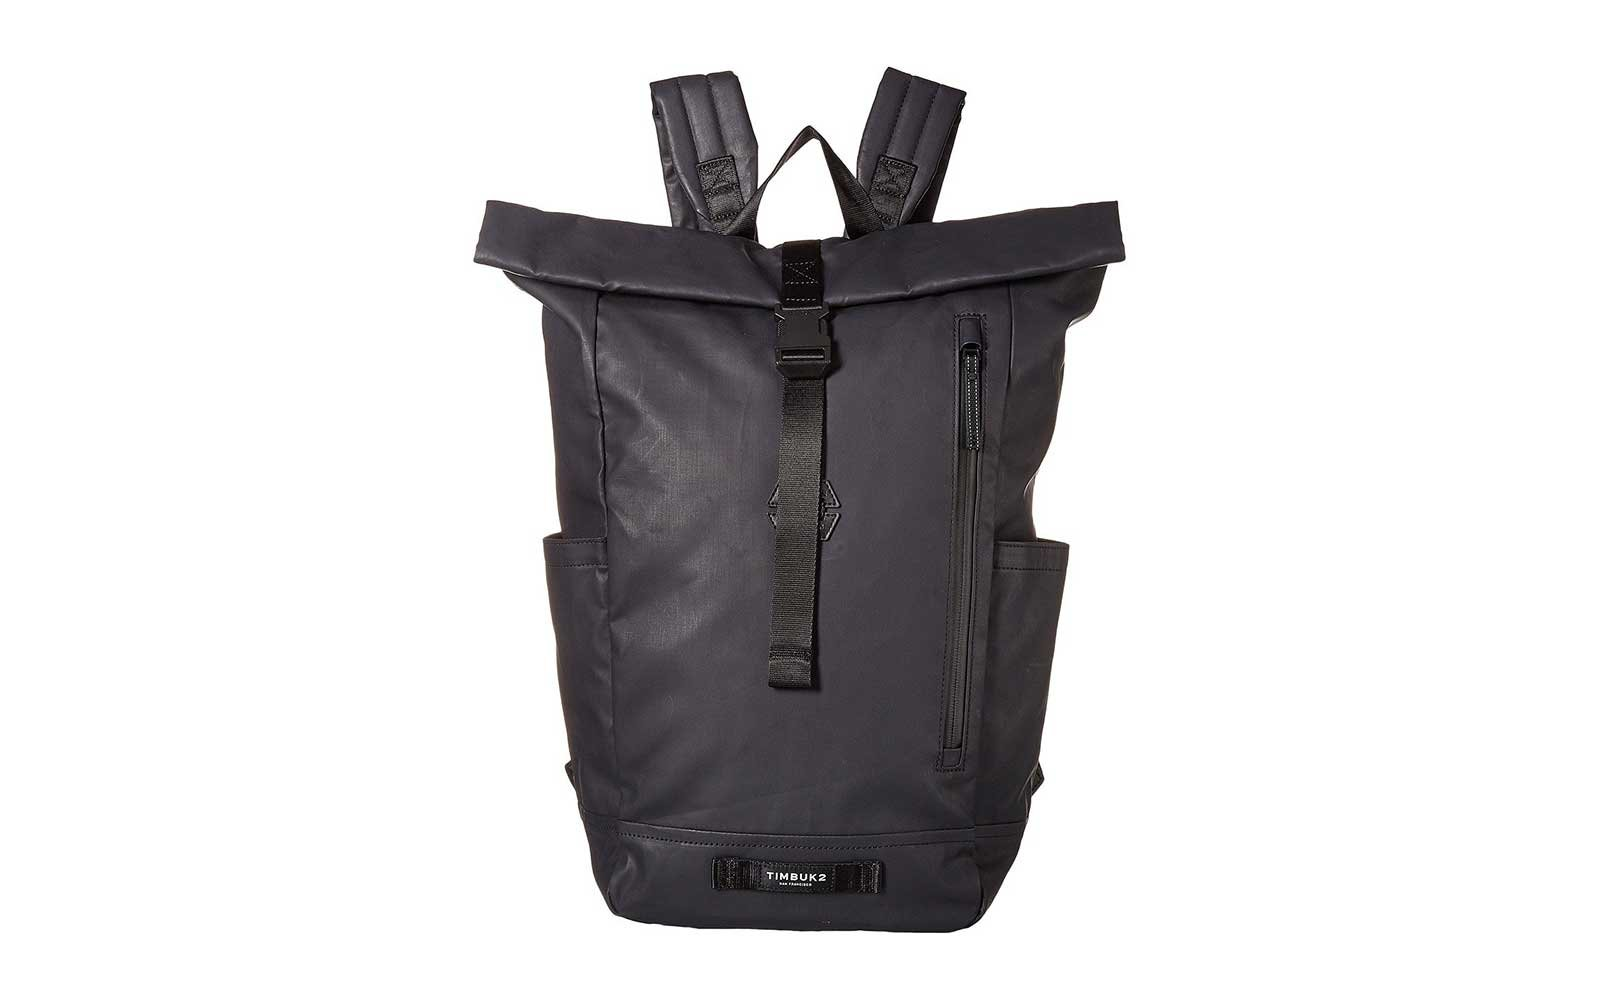 Black carbon coated waterproof pack from Timbuk2